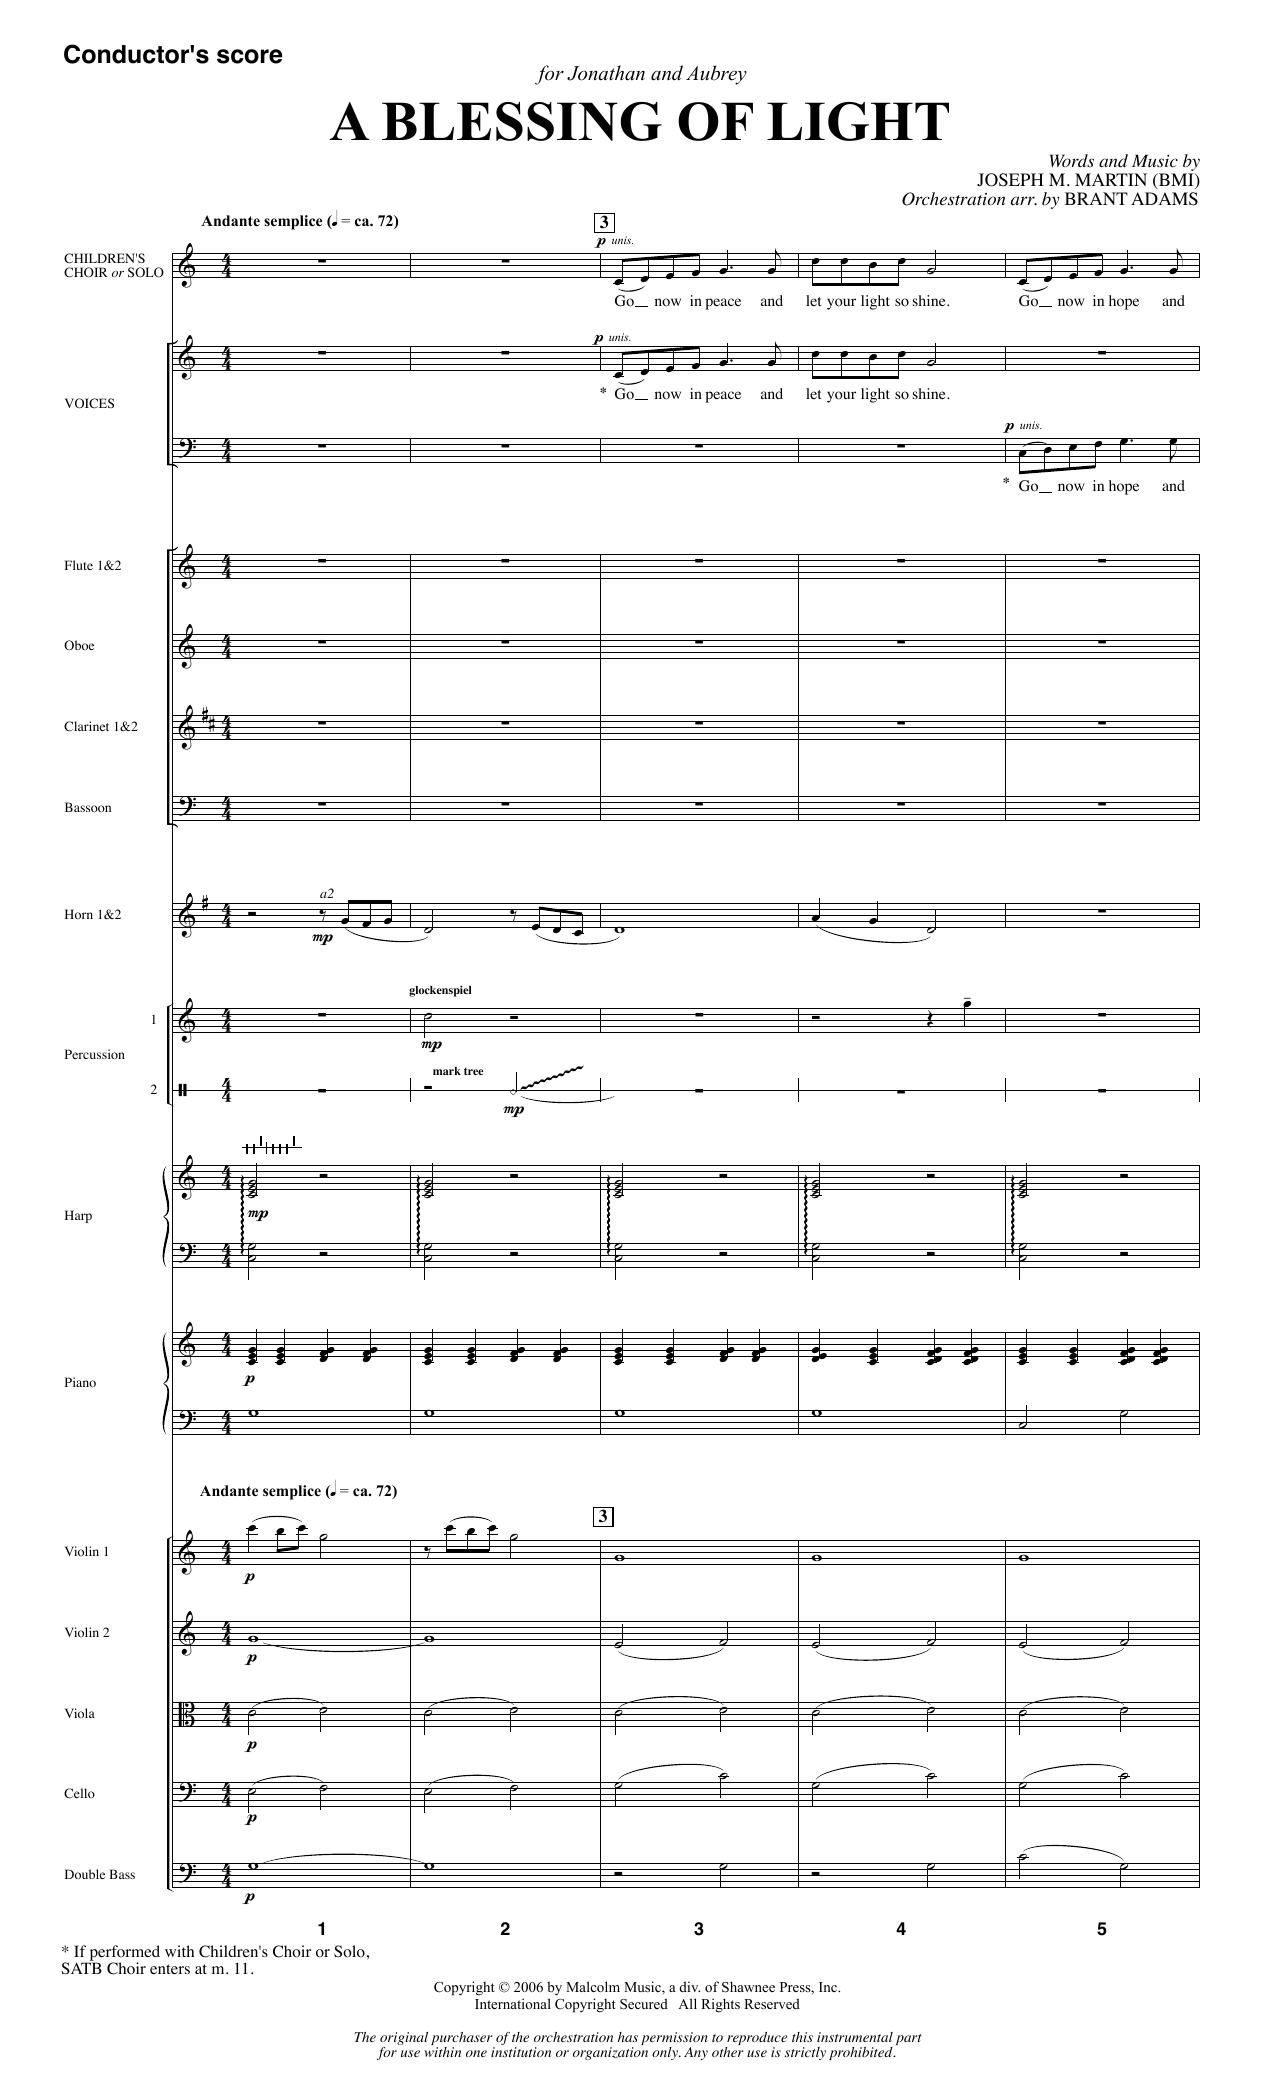 Joseph M. Martin A Blessing of Light - Full Score sheet music notes and chords. Download Printable PDF.